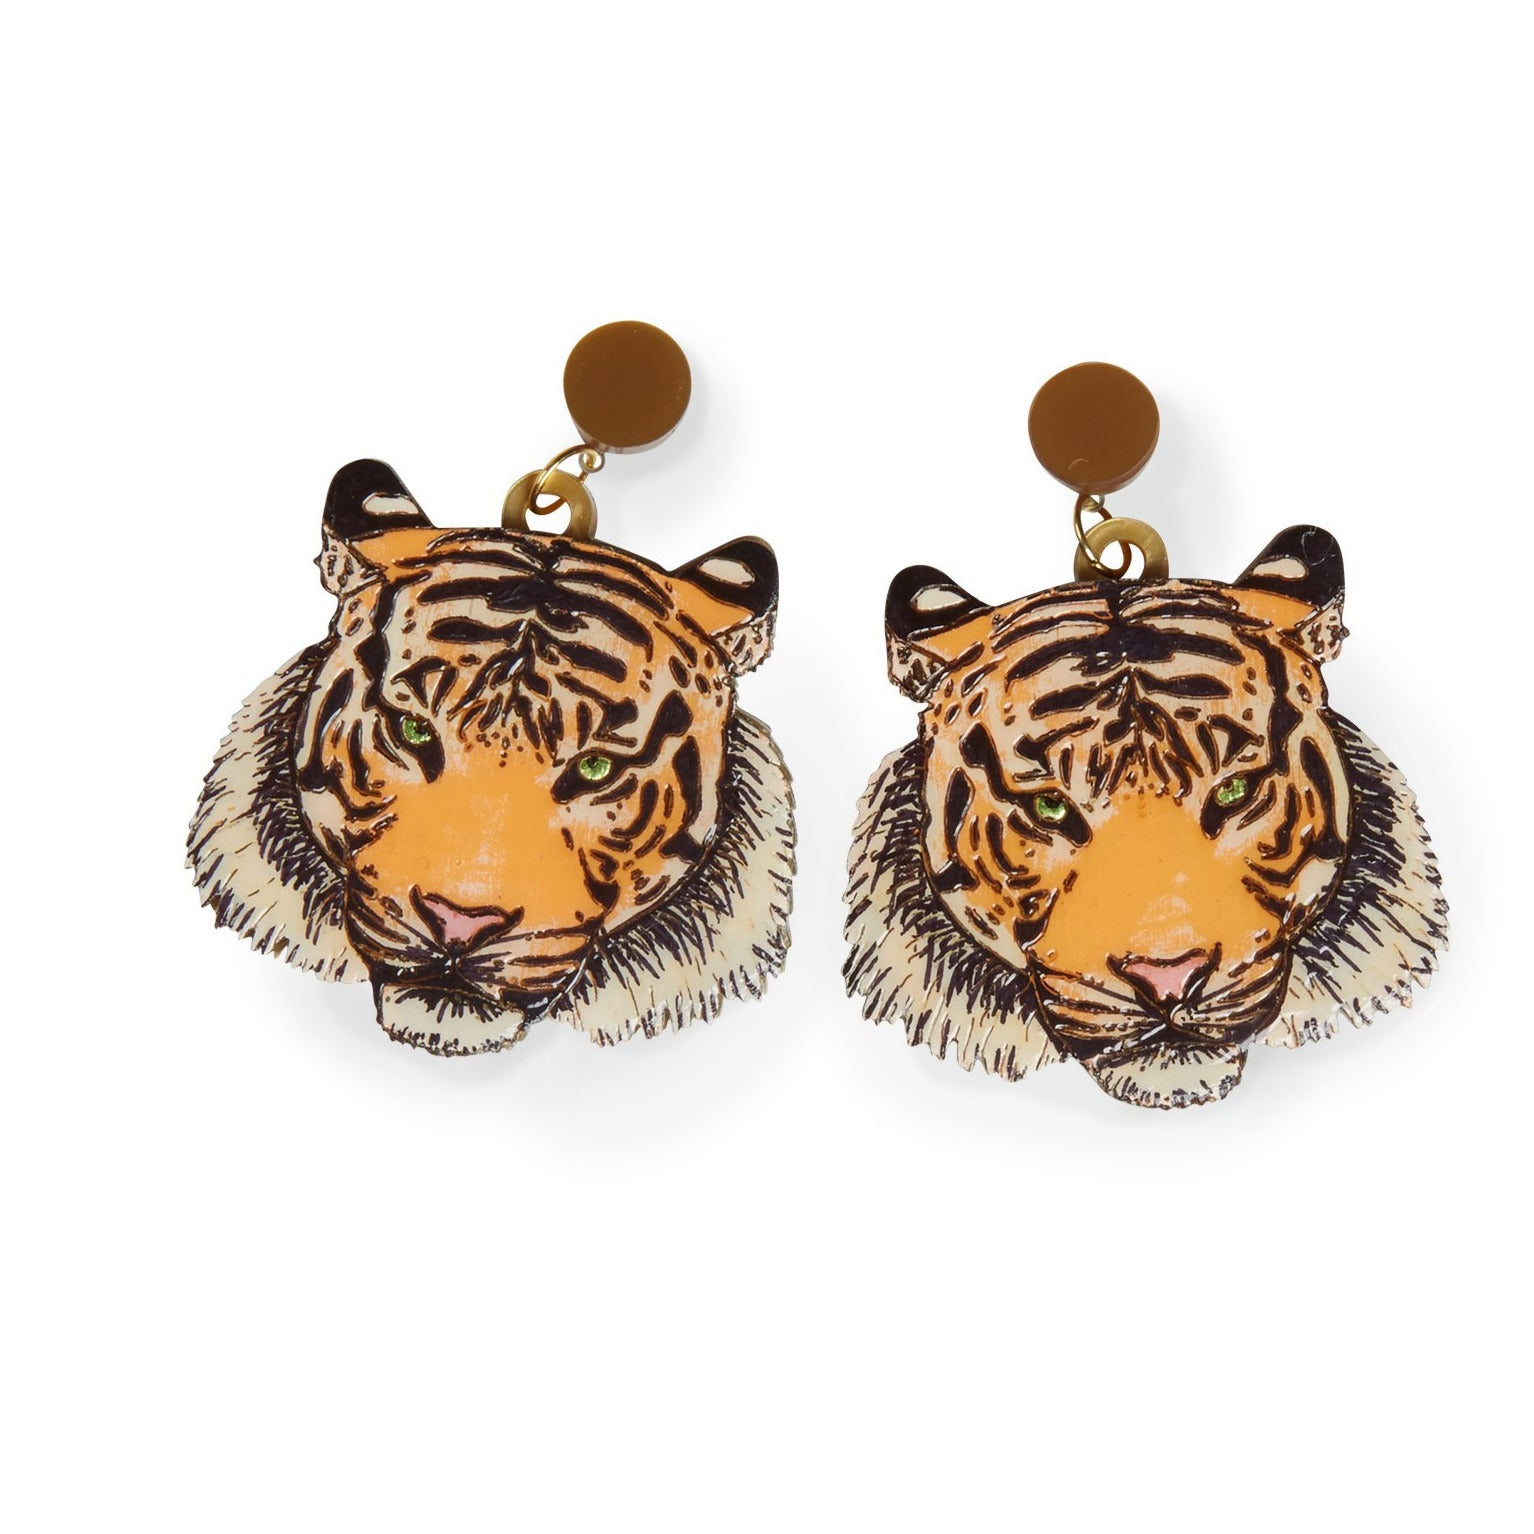 Tiger Laser-cut Acrylic Hand-painted British-made Retro Earrings